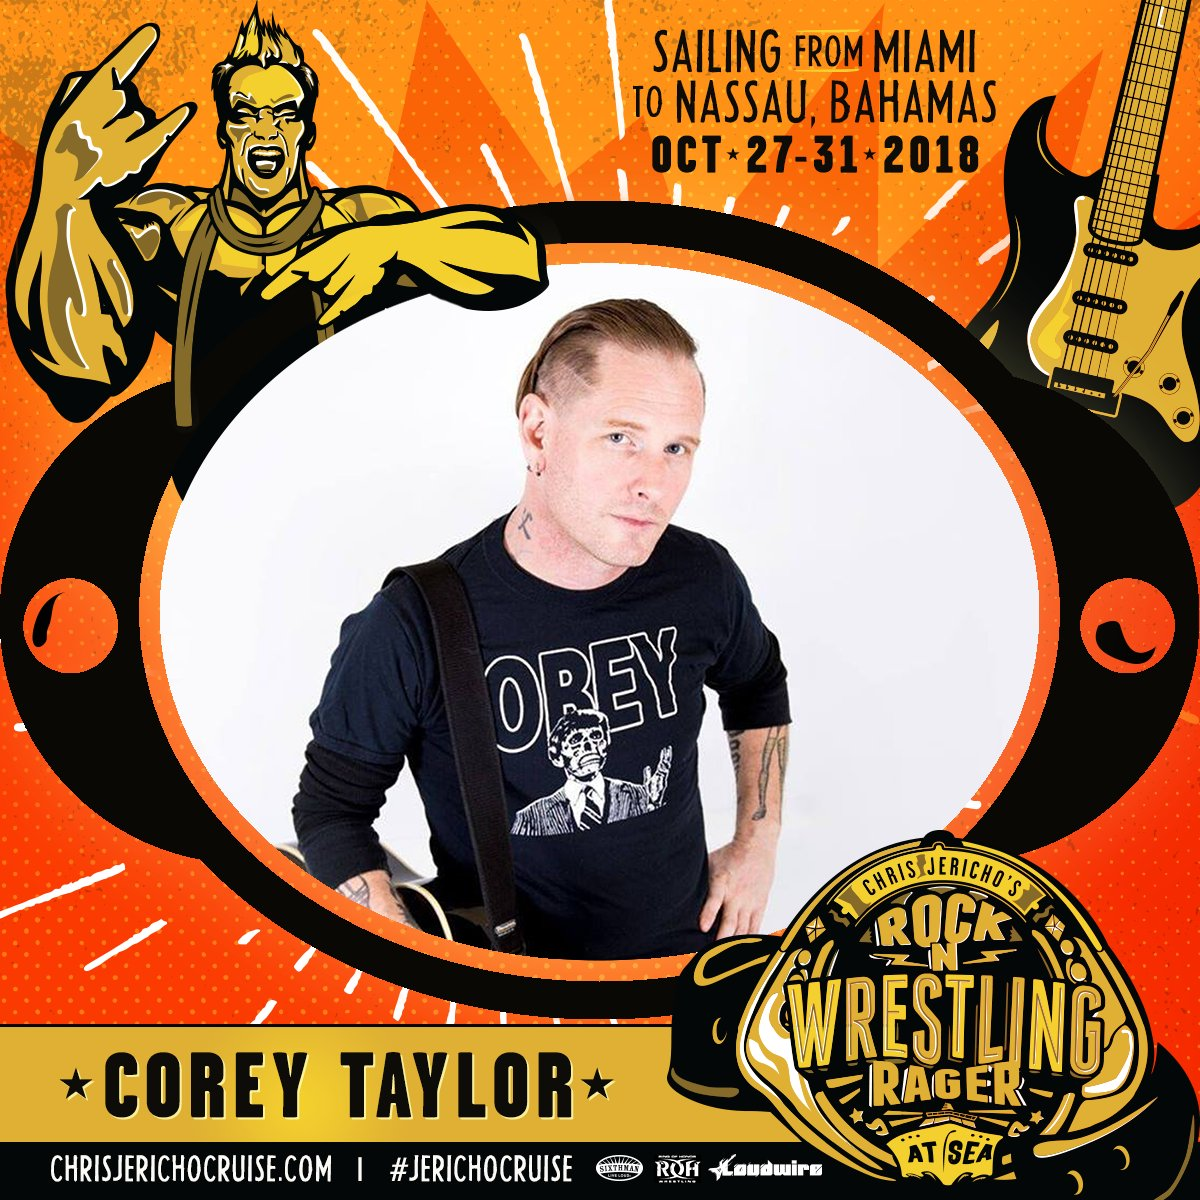 I'll be performing a solo acoustic set on the inaugural #JerichoCruise, sailing from Miami to Nassau, Bahamas October 27-31. Book your cabin + get full details here: https://t.co/KodIsh1N2c